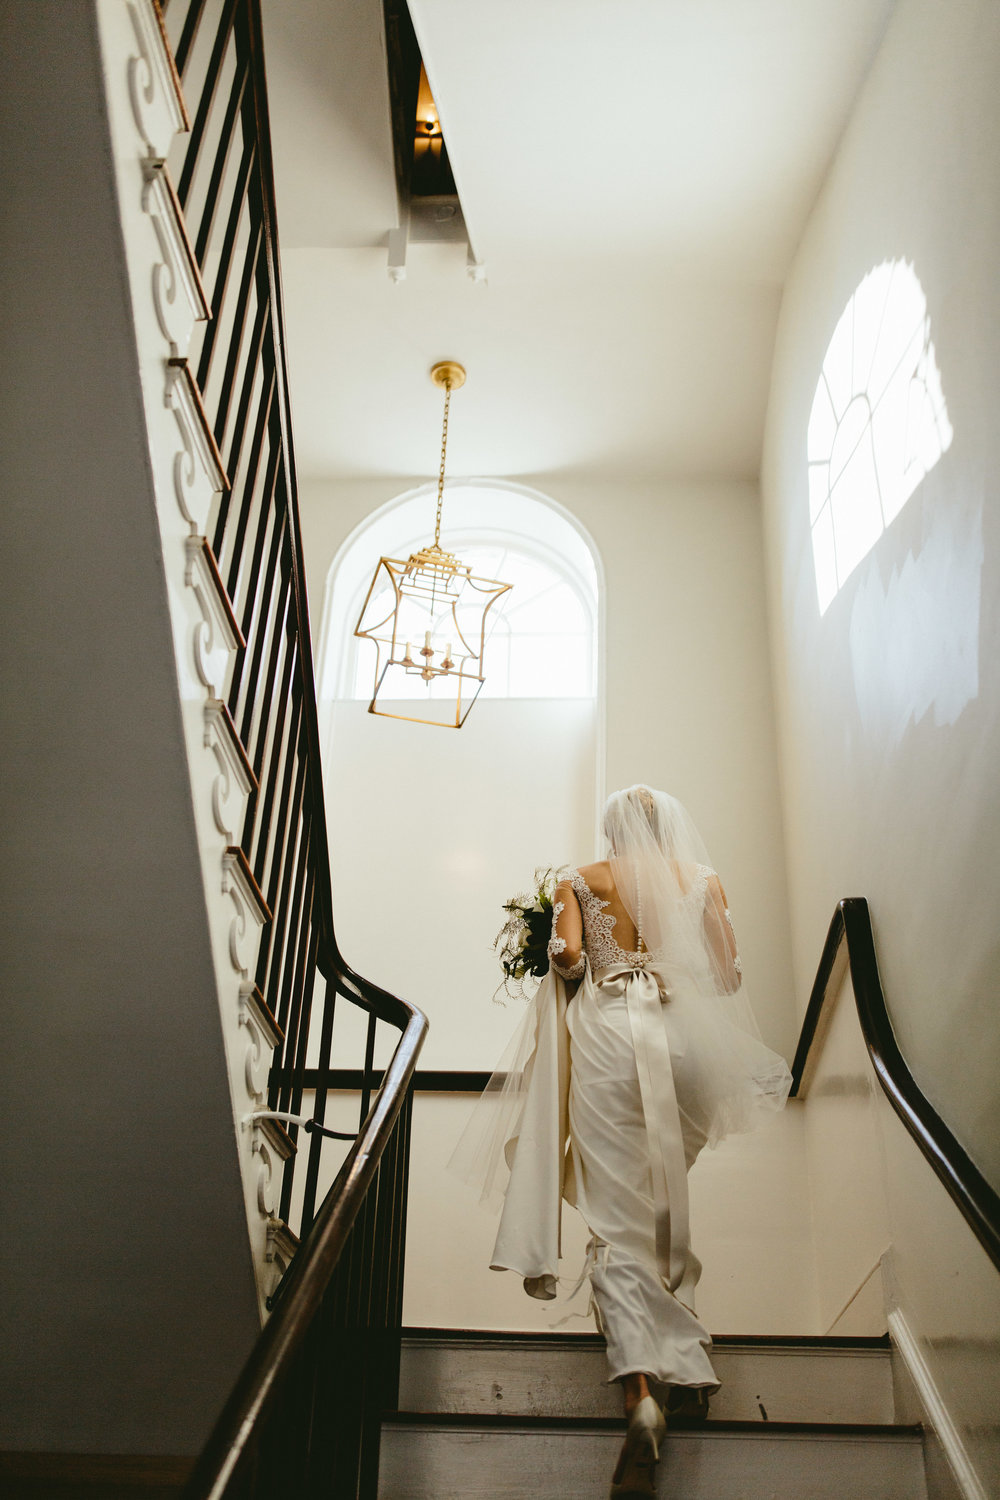 lace backed wedding dress, lace wedding dress, bride on staircase, unique wedding dress inspiration, cream wedding dress, low back wedding dress, groomsmen, bridal party photo inspiration, black tie bridal party, black tie groom, groomsmen in tux, groomsmen style ideas, Philadelphia wedding, destination wedding, Brooklyn wedding, Brooklyn elopement, Philadelphia elopement, Gadsden house Charleston South Carolina, southern wedding inspiration, unique wedding inspiration, wedding inspiration, destination wedding inspiration, wedding ideas, romantic wedding inspiration, classy wedding ideas